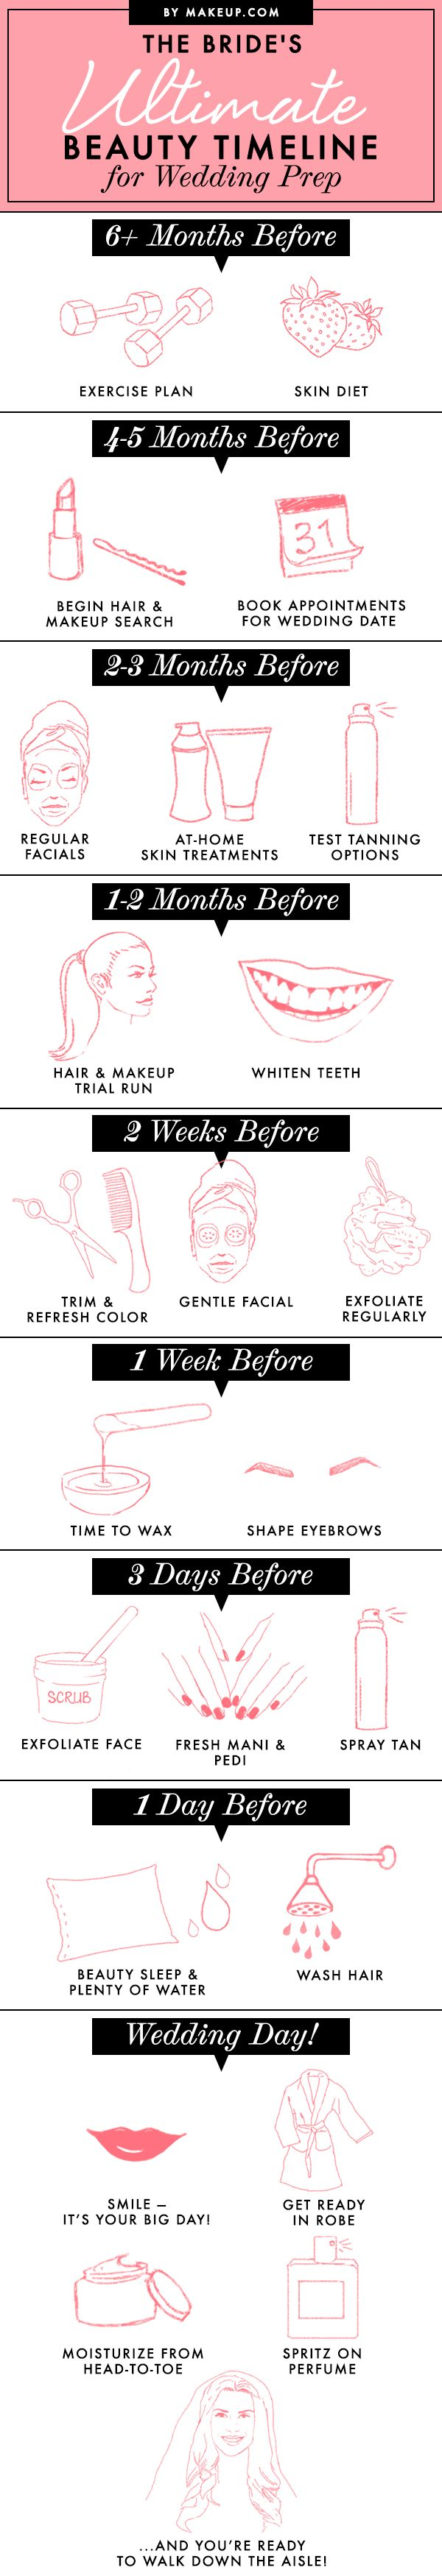 Relieve Stress - 19 Essential Beauty Tips for Brides Before The Wedding - EverAfterGuide #WeddingMakeup